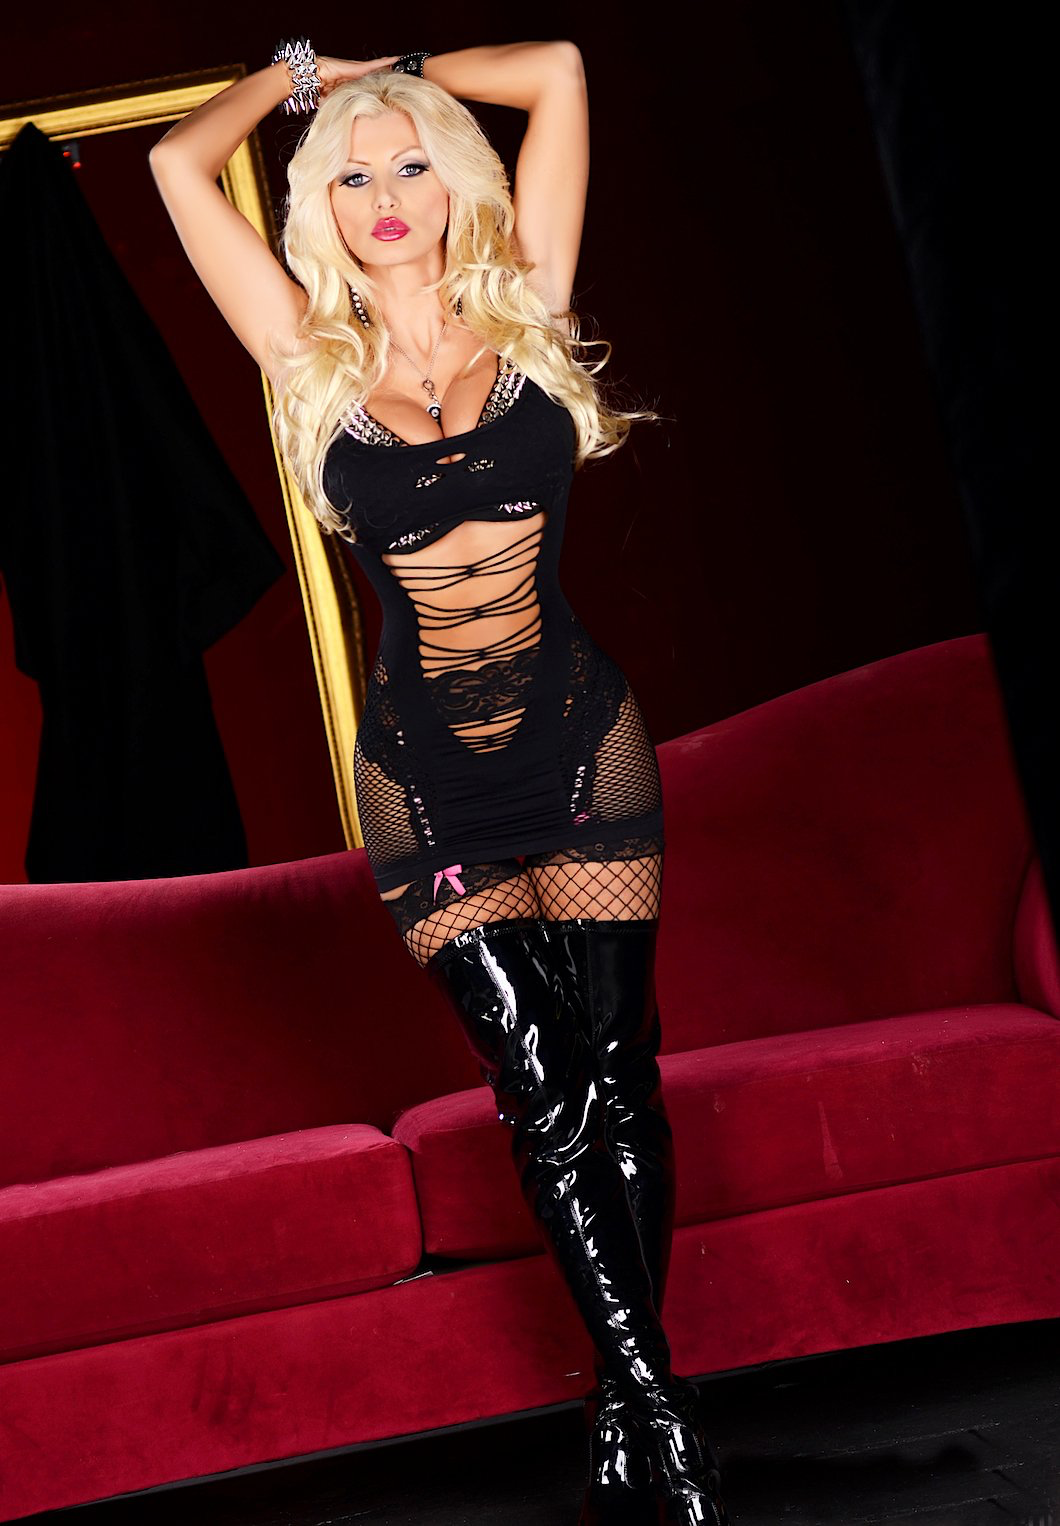 Pics Brittany Andrews naked (94 photos), Topless, Hot, Feet, underwear 2015